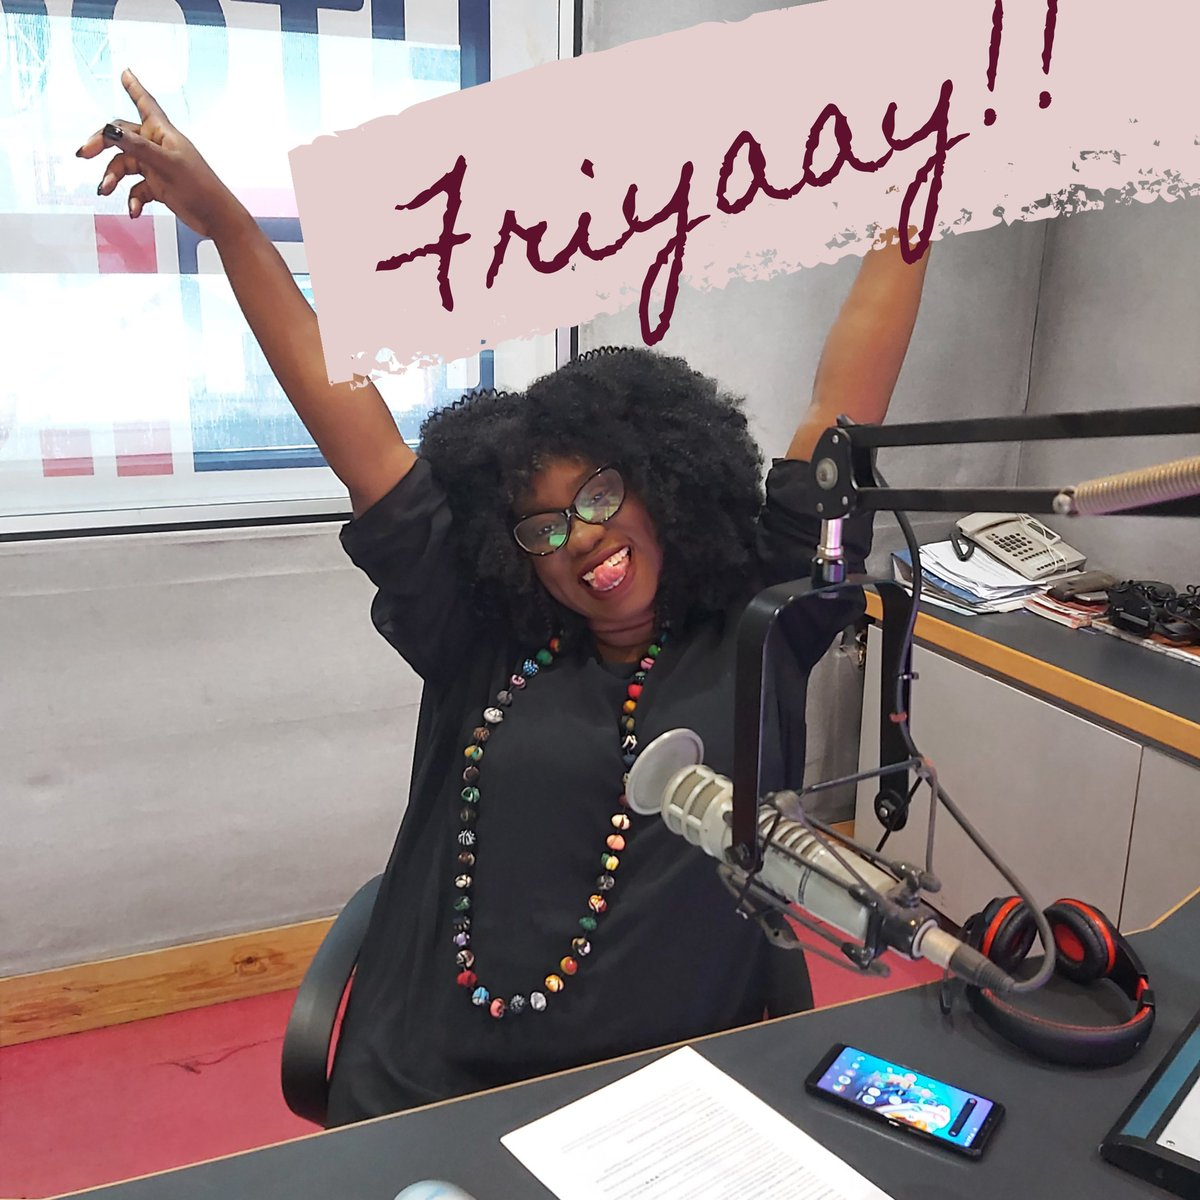 TGIF!  Do like this 🤸♀️🕺💃 if you're as excited about the weekend as @TheFavoredWoman